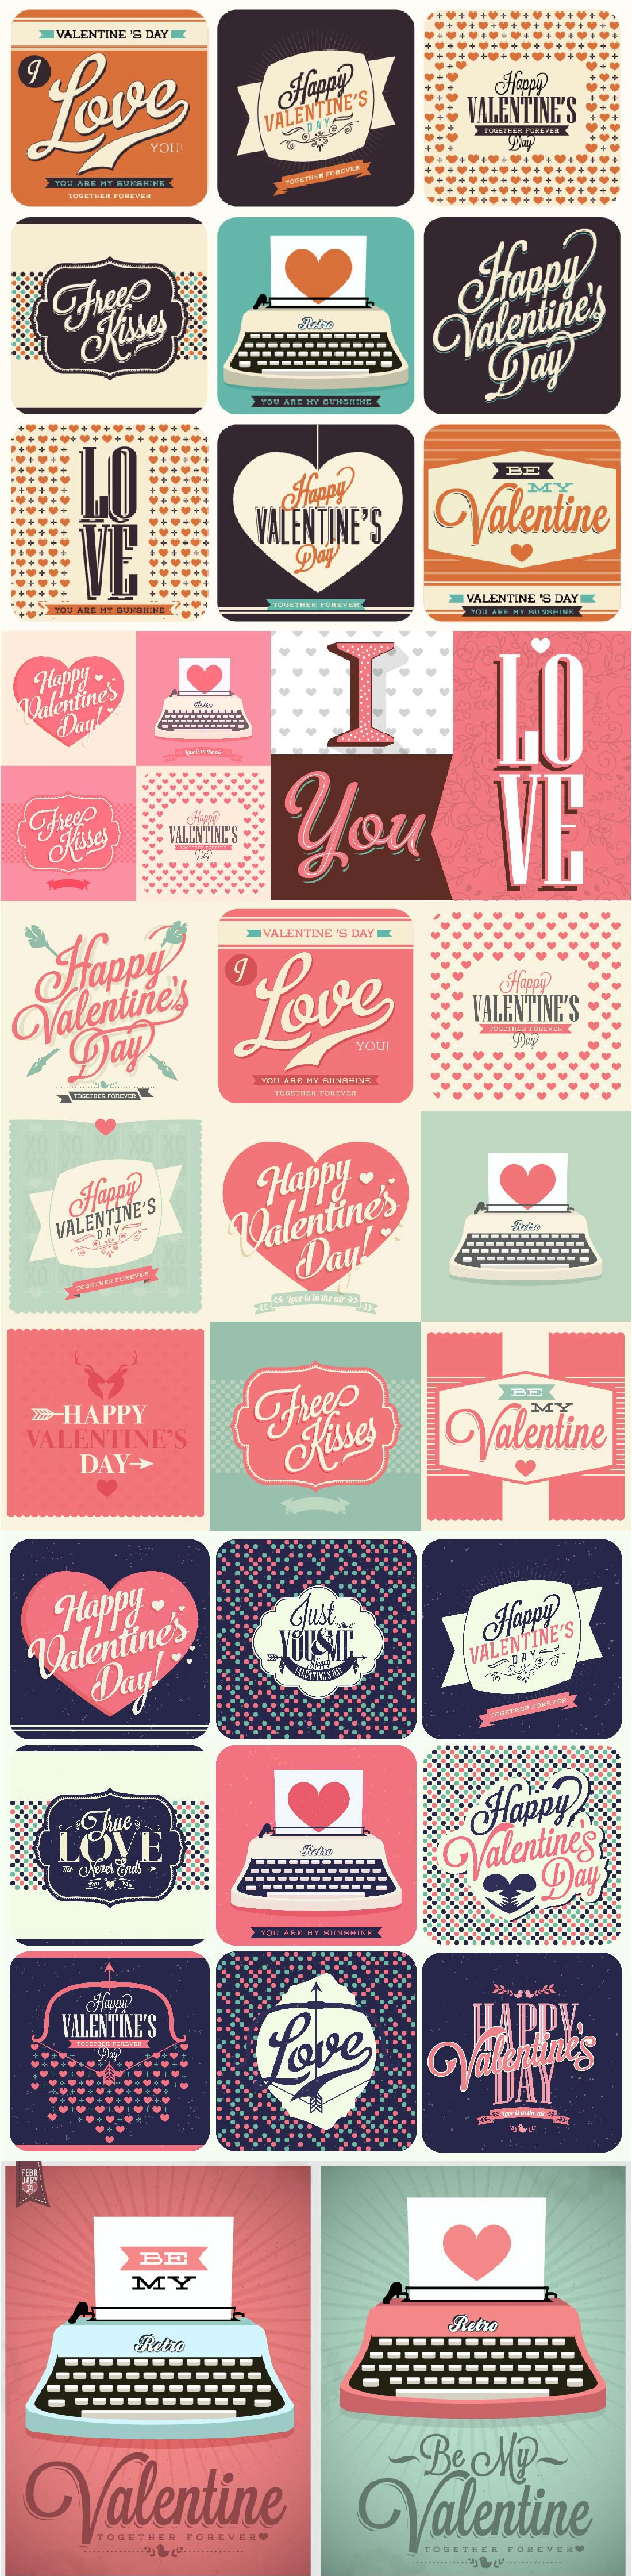 500+ Premium Vectors Collection 18